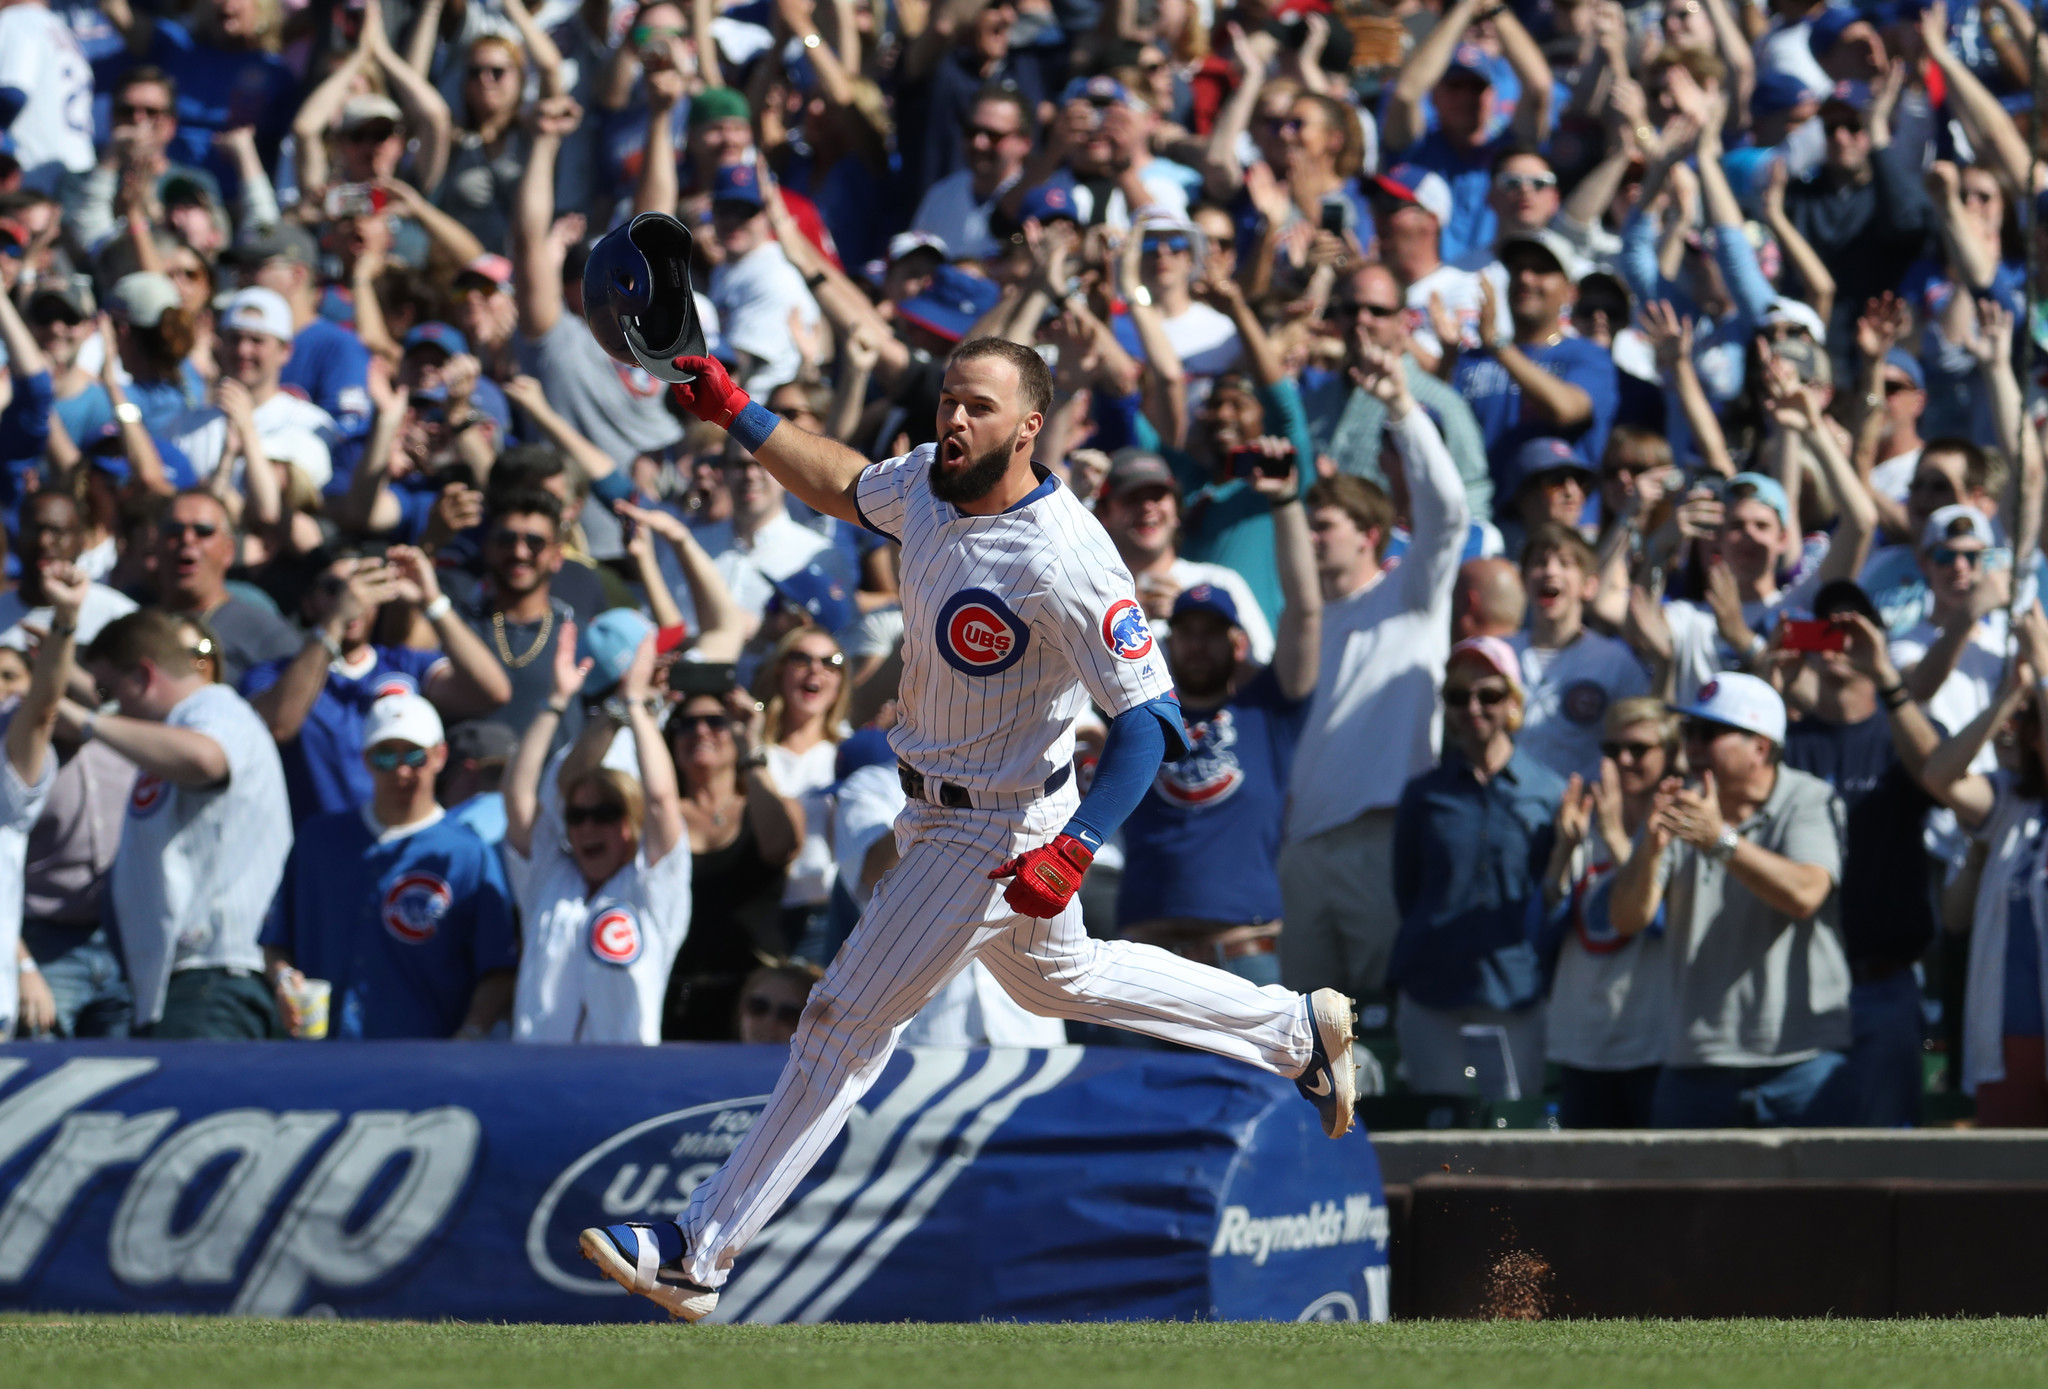 David Bote delivered another walk-off hit for the Cubs. Then he rushed to O'Hare for a flight to Colorado, where his wife is about to give birth.